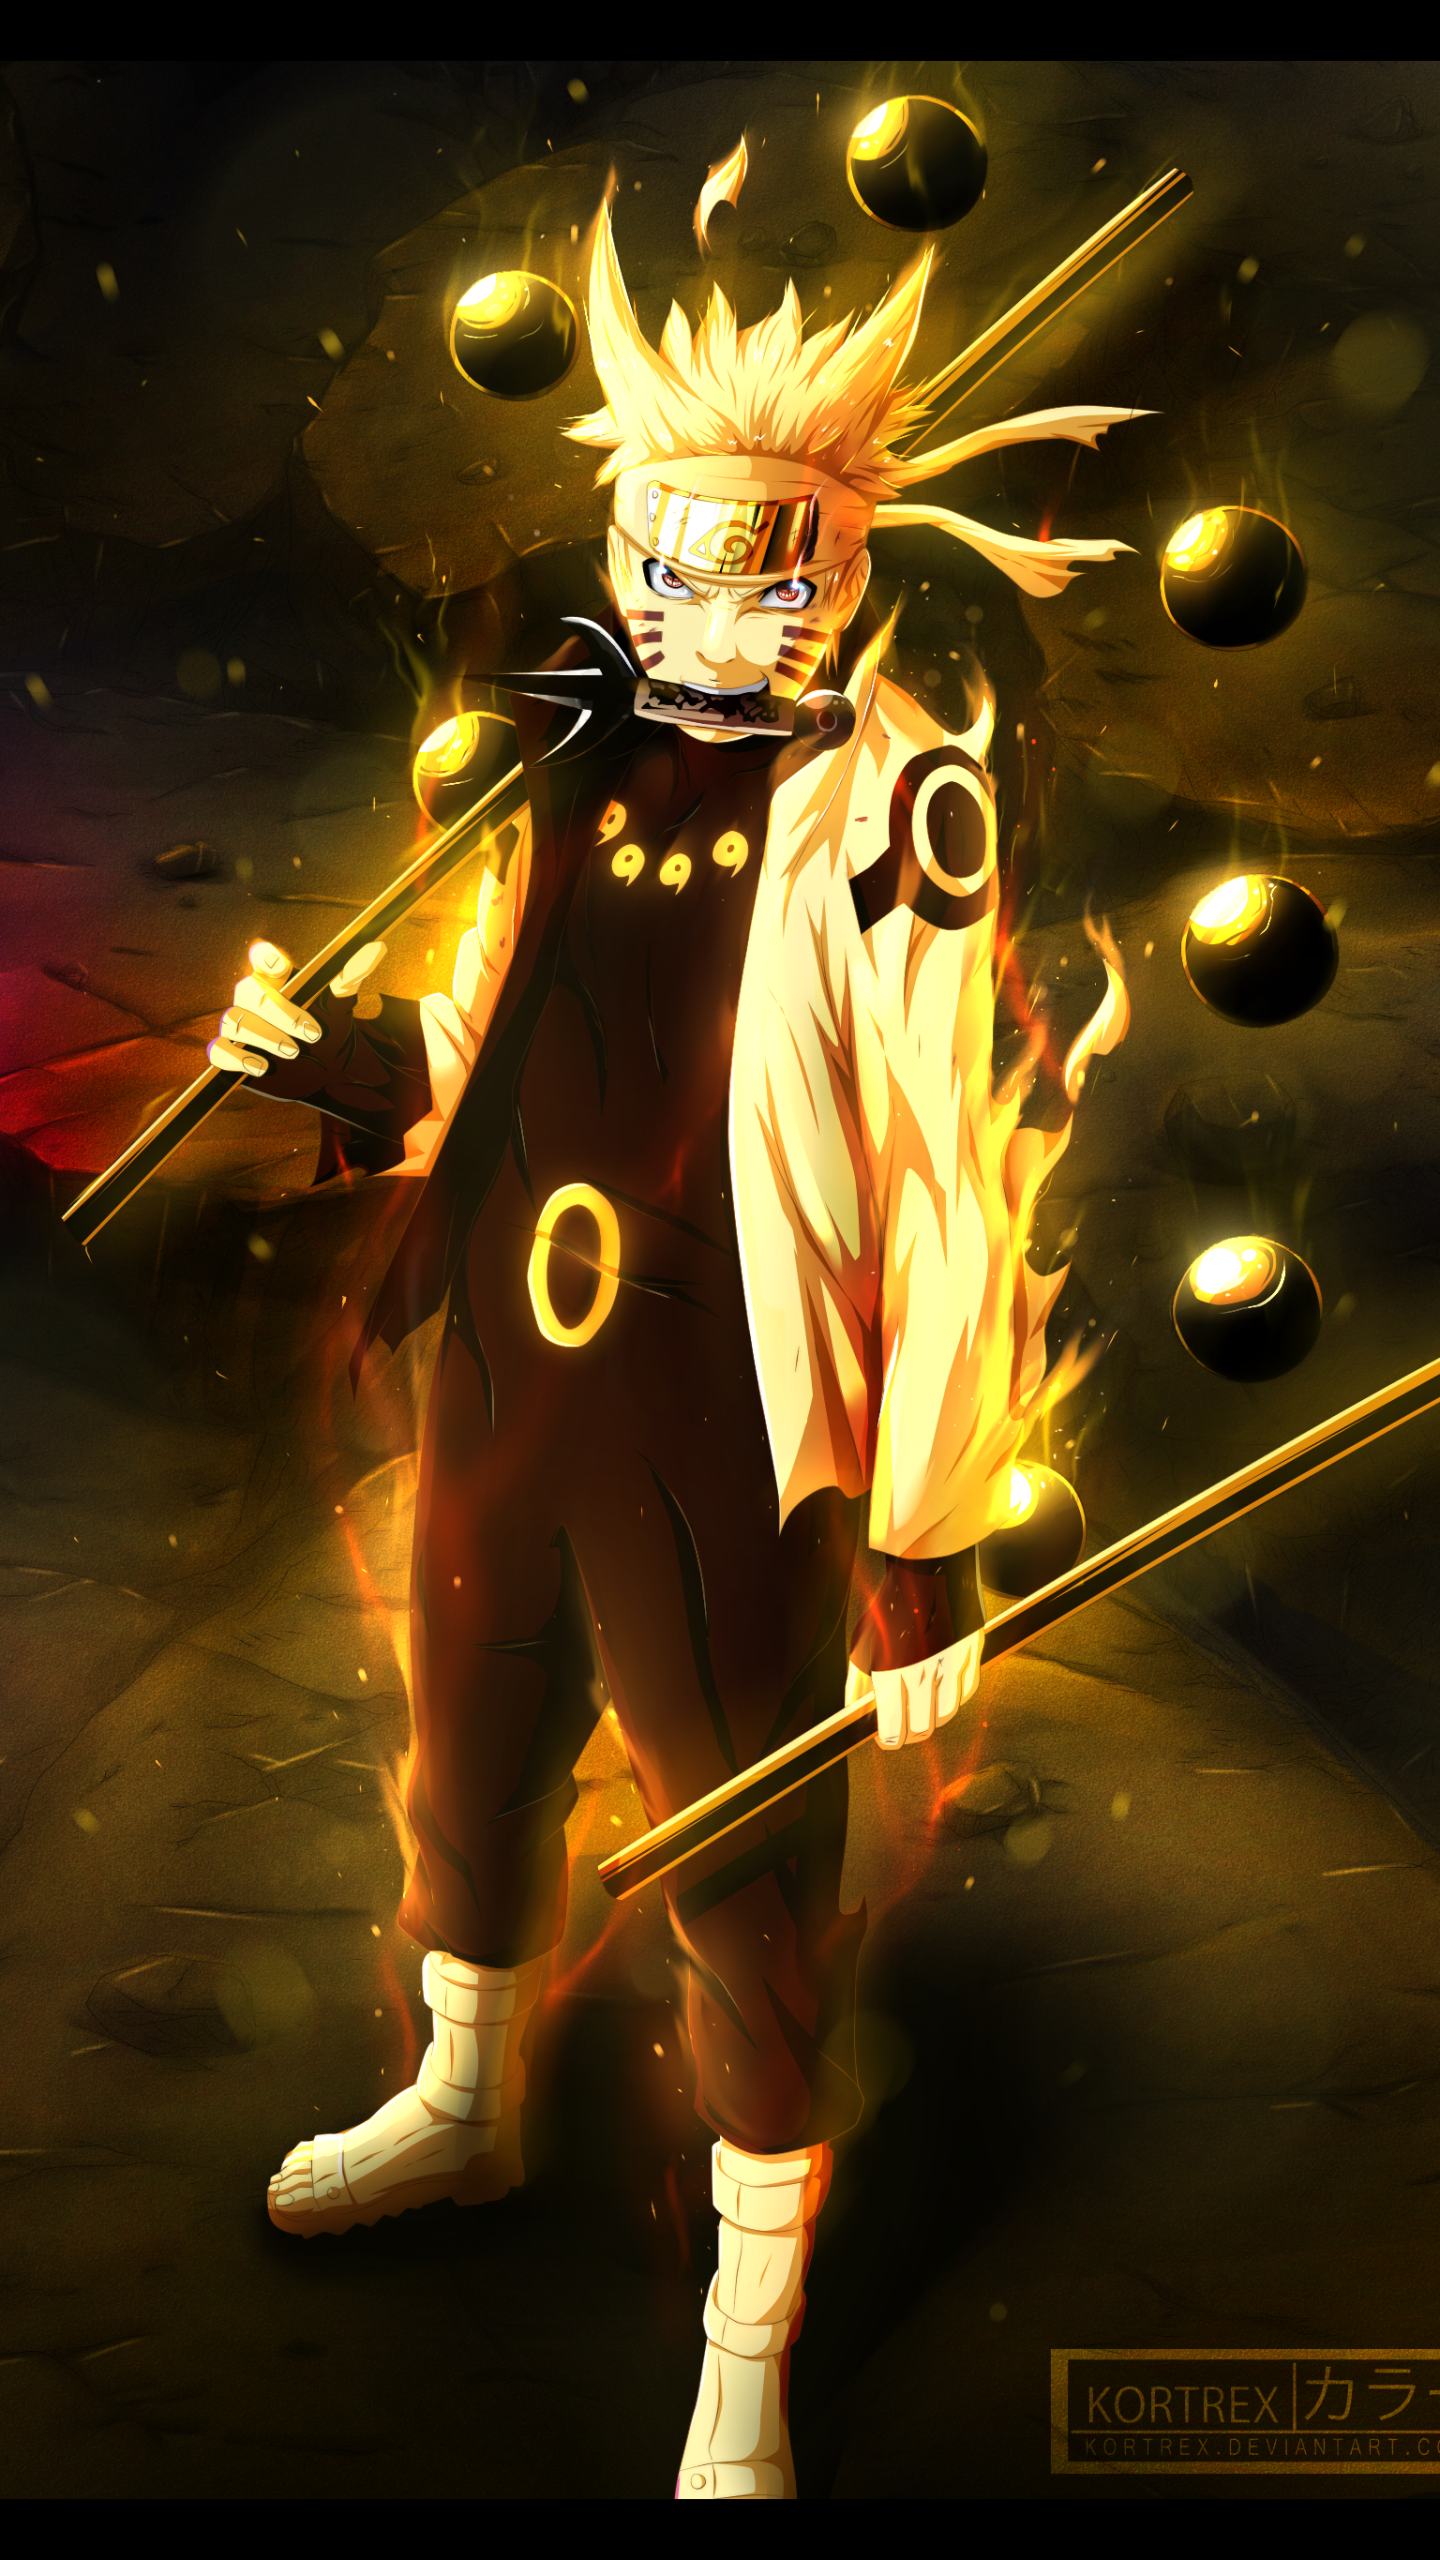 Naruto Wallpaper For Iphone 5